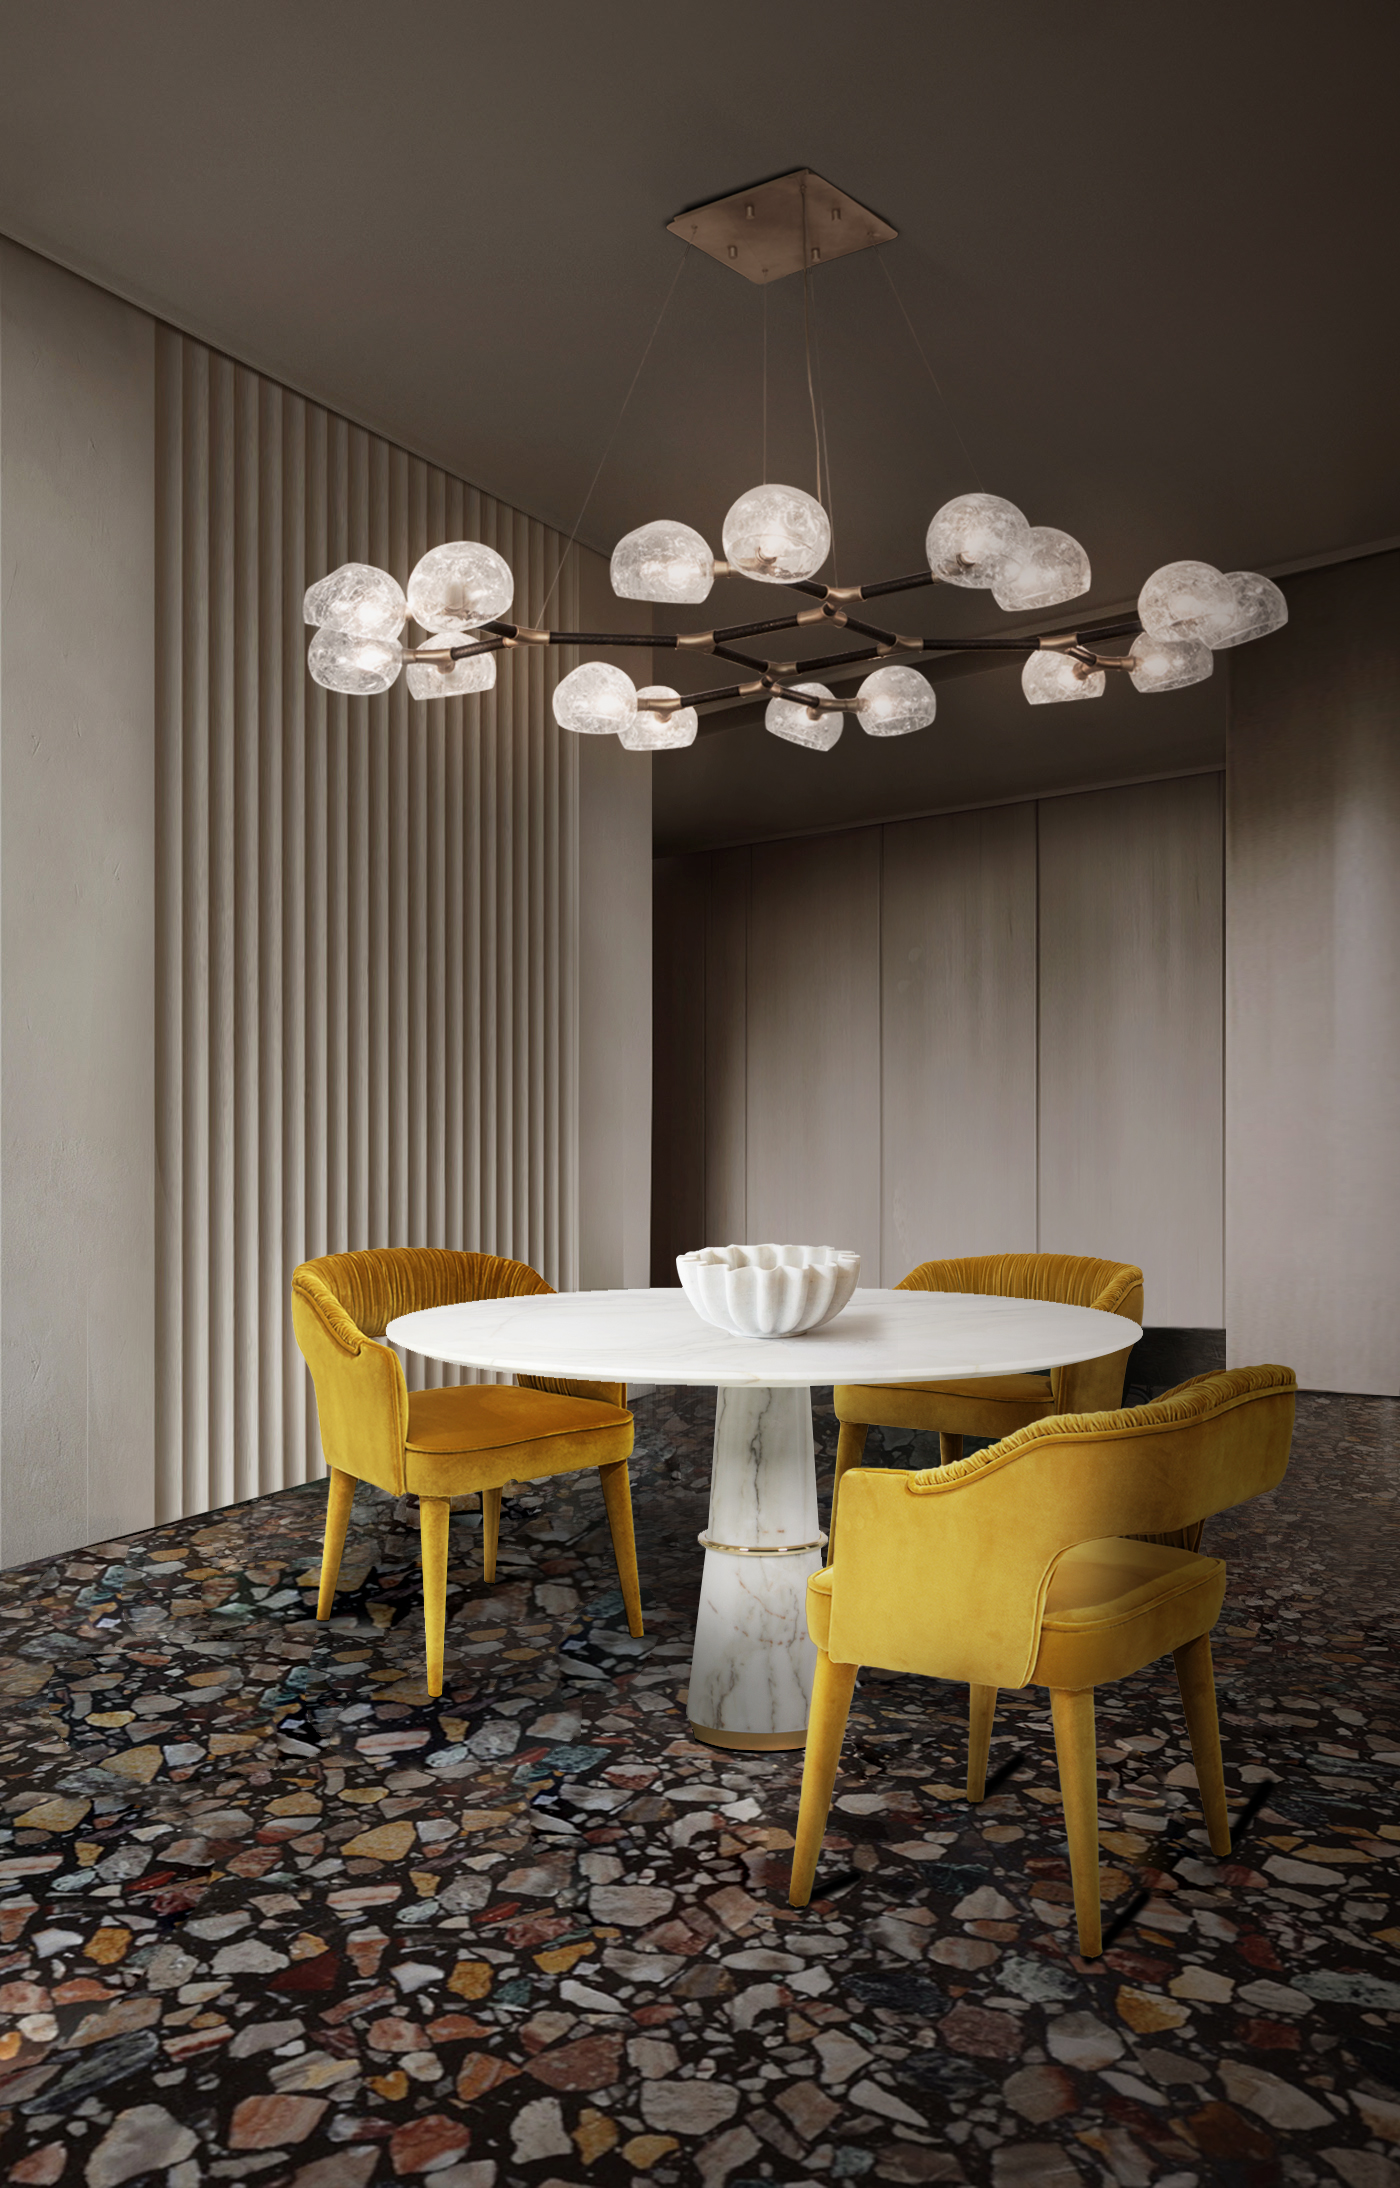 20 Dining Chairs You Will Need For A Modern Dining Room dining chairs 20 Dining Chairs You Will Need For A Modern Dining Room BB HorusAgra